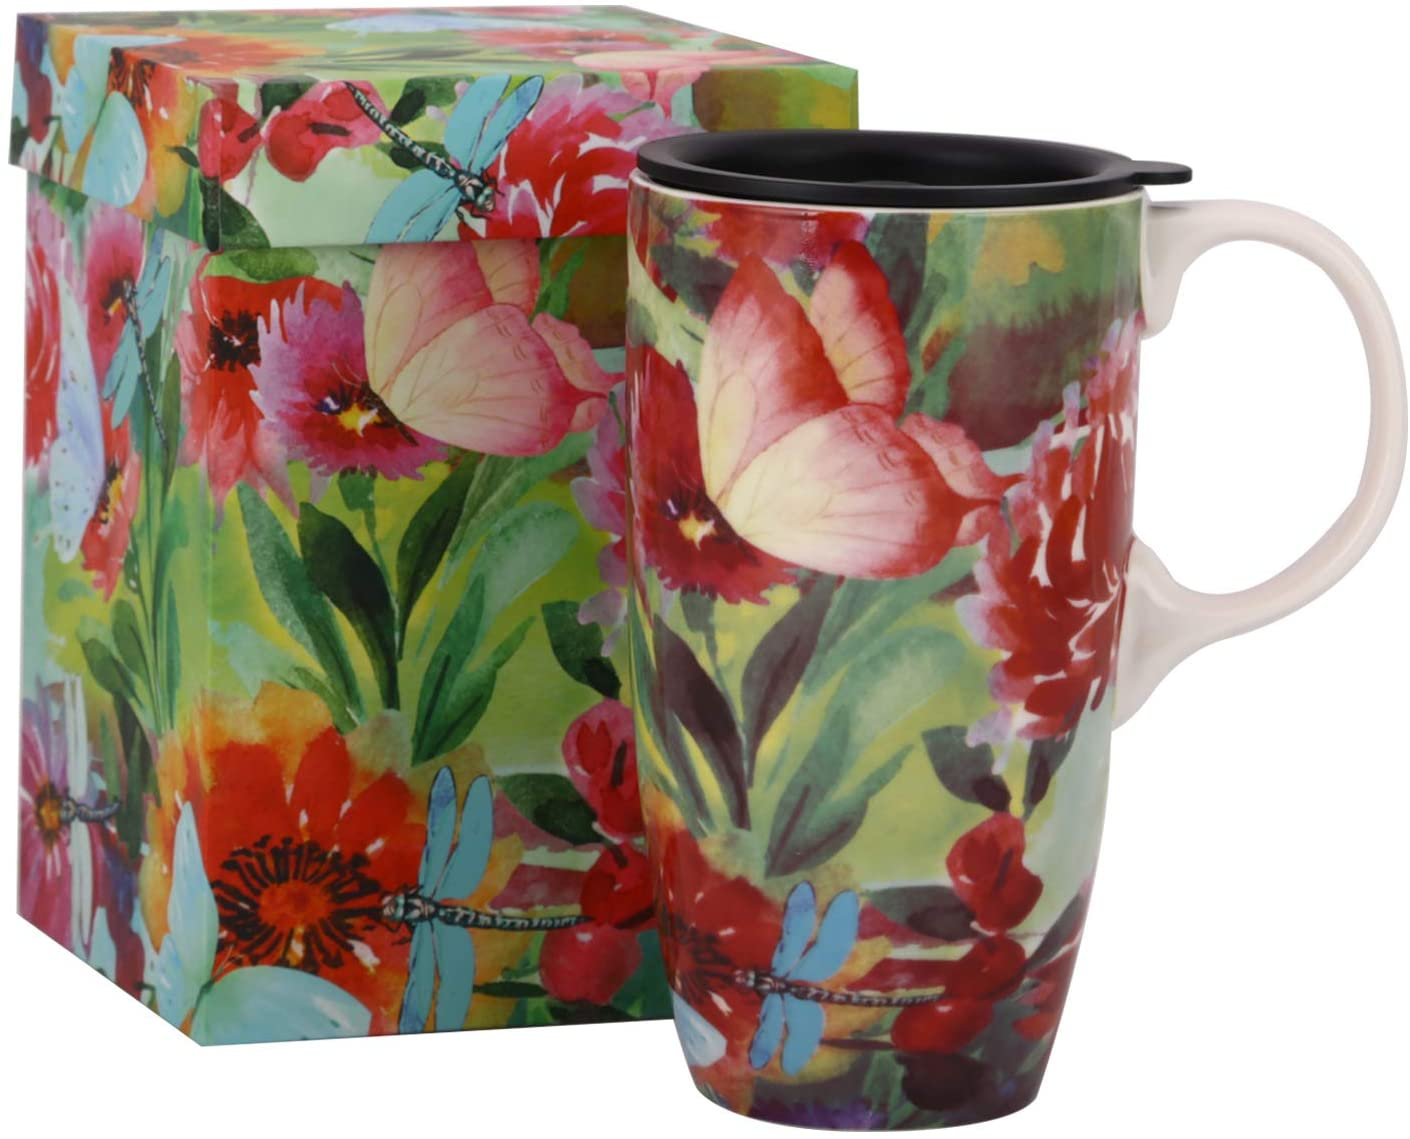 Ceramic Coffee Mug 17 oz. Coffee Cup with Color Boxs and Spill-proof Lid